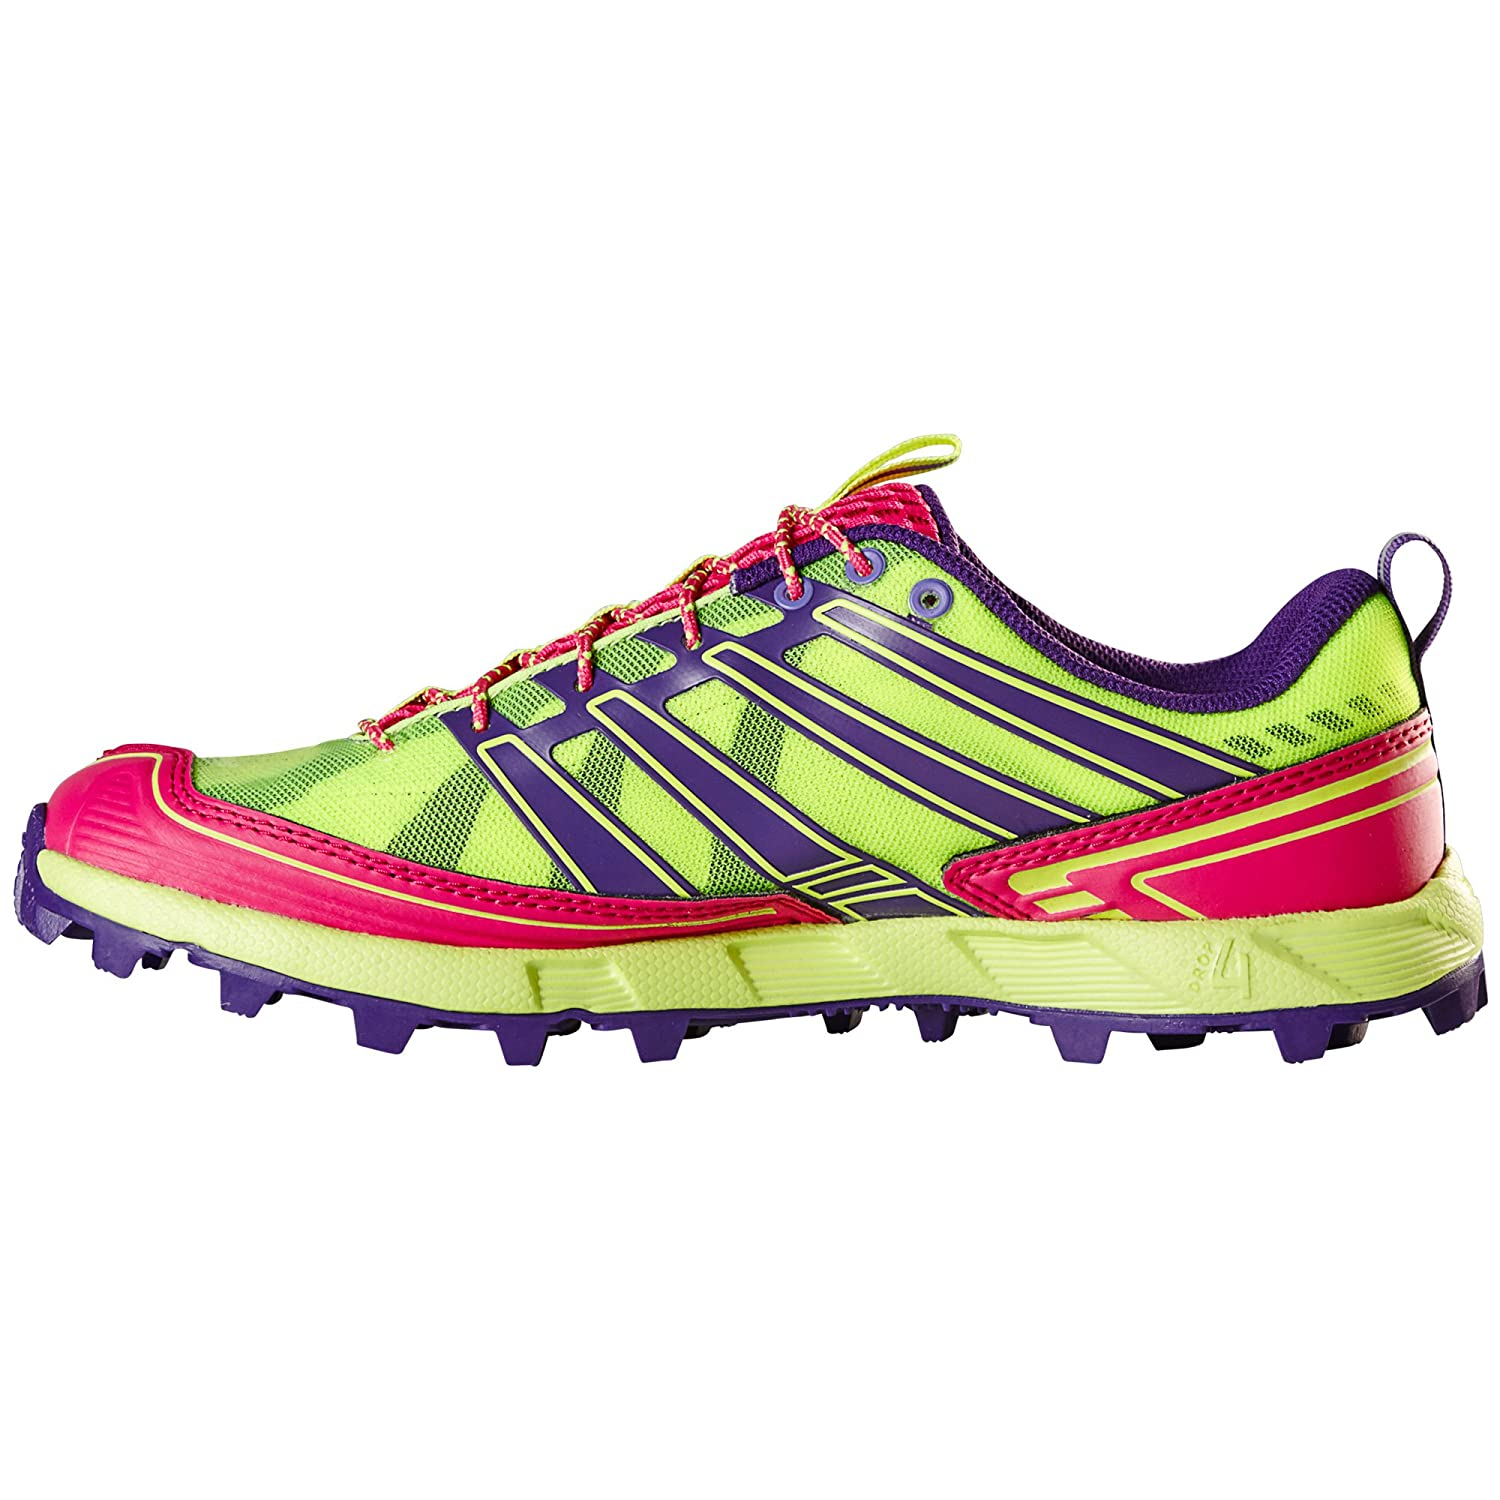 Salming Elements Ladies Running Shoes B01CYBZLCY 8.5 B(M) US|Pink